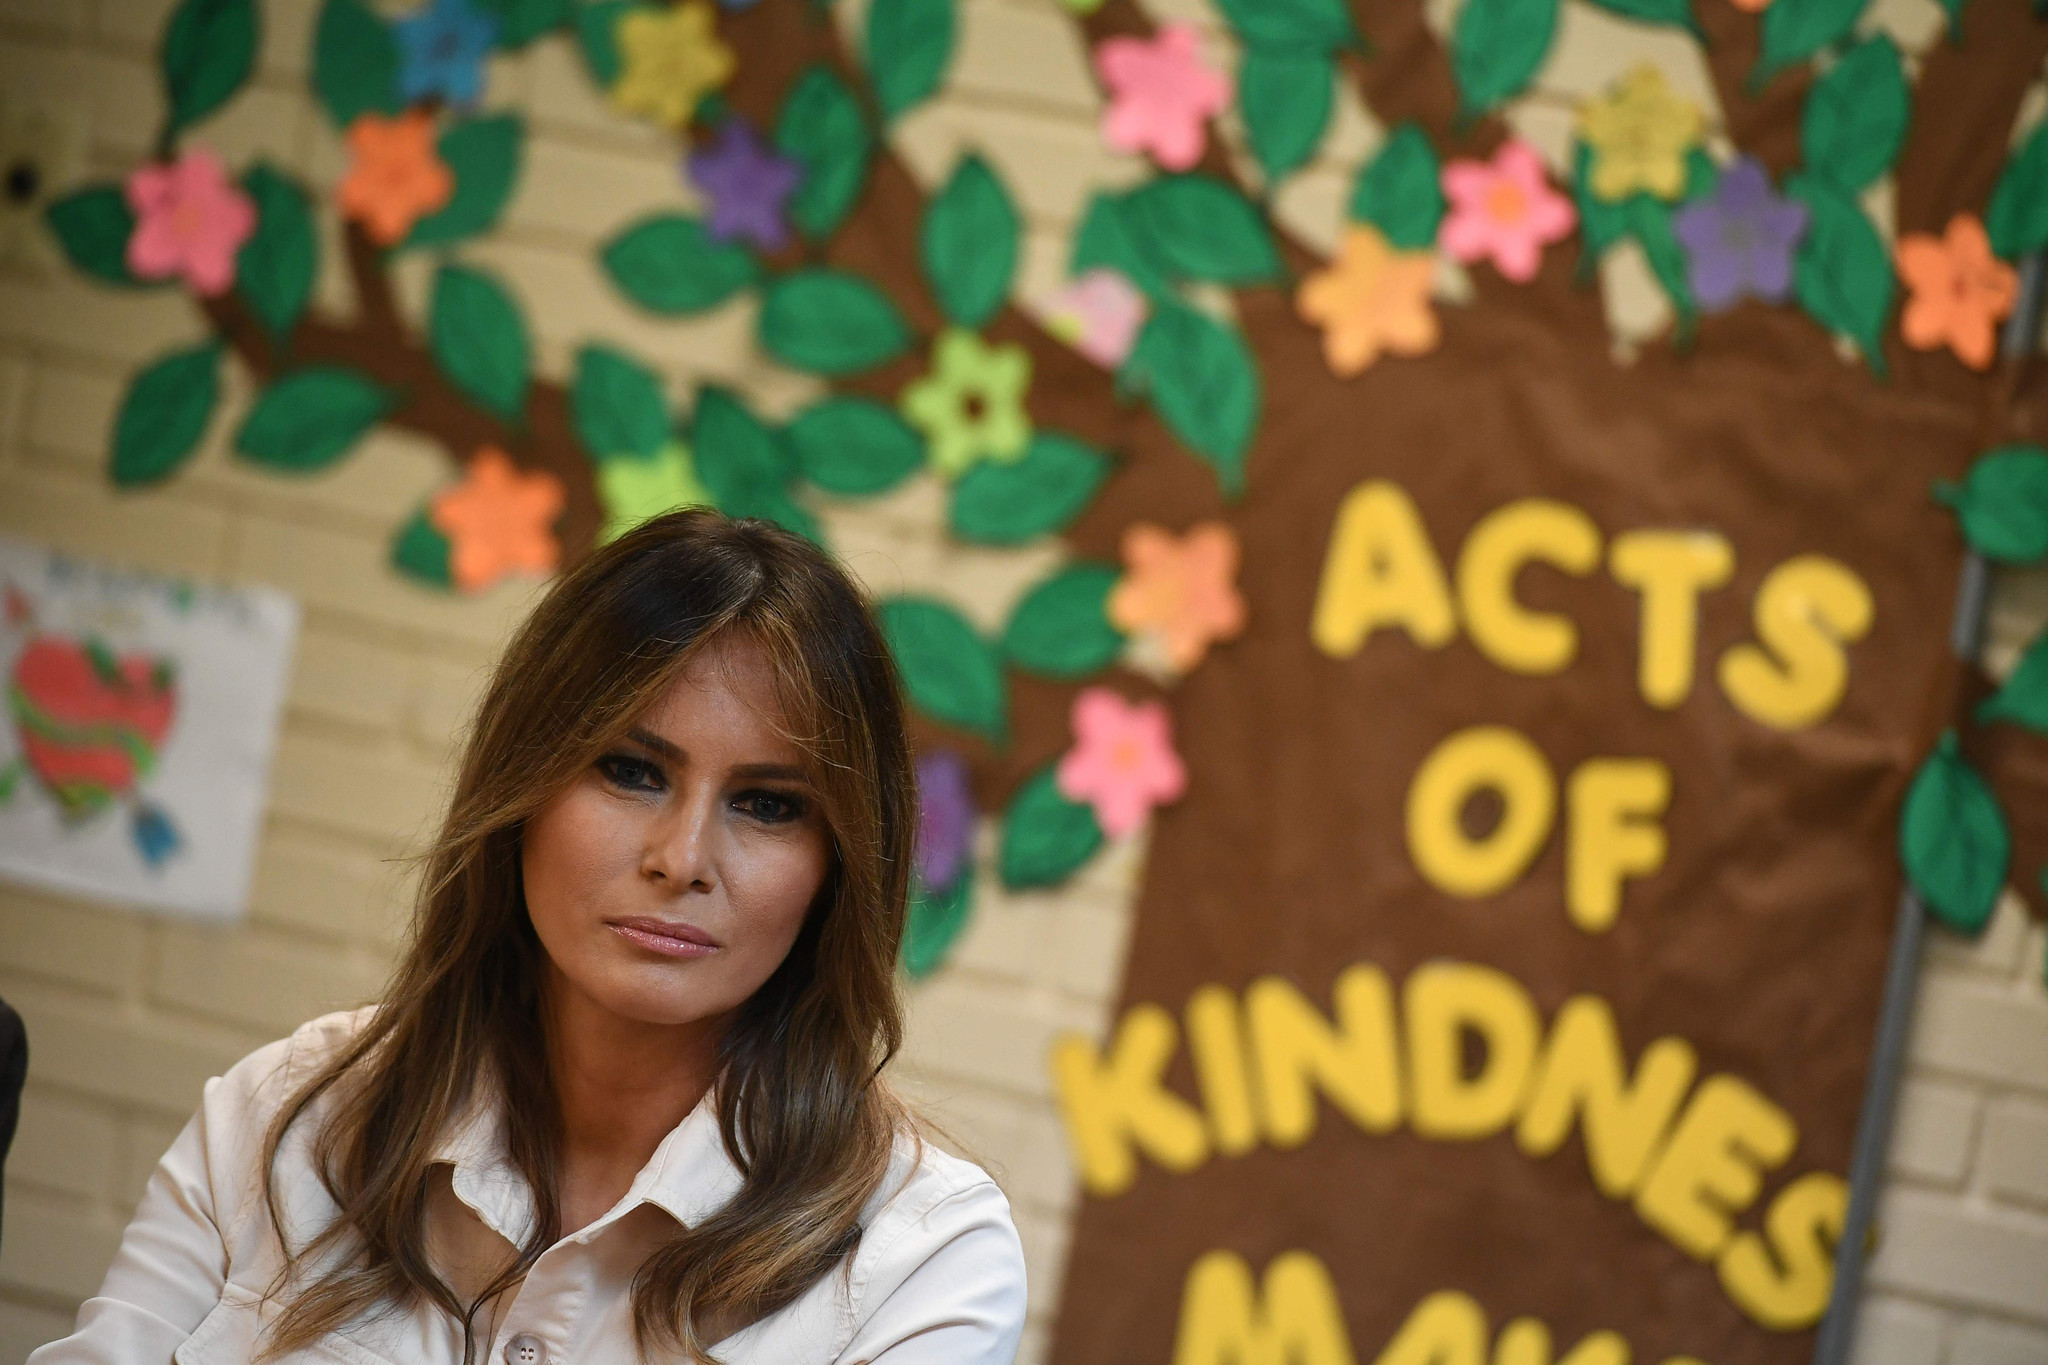 First lady Melania Trump visits migrant children at Texas detention center